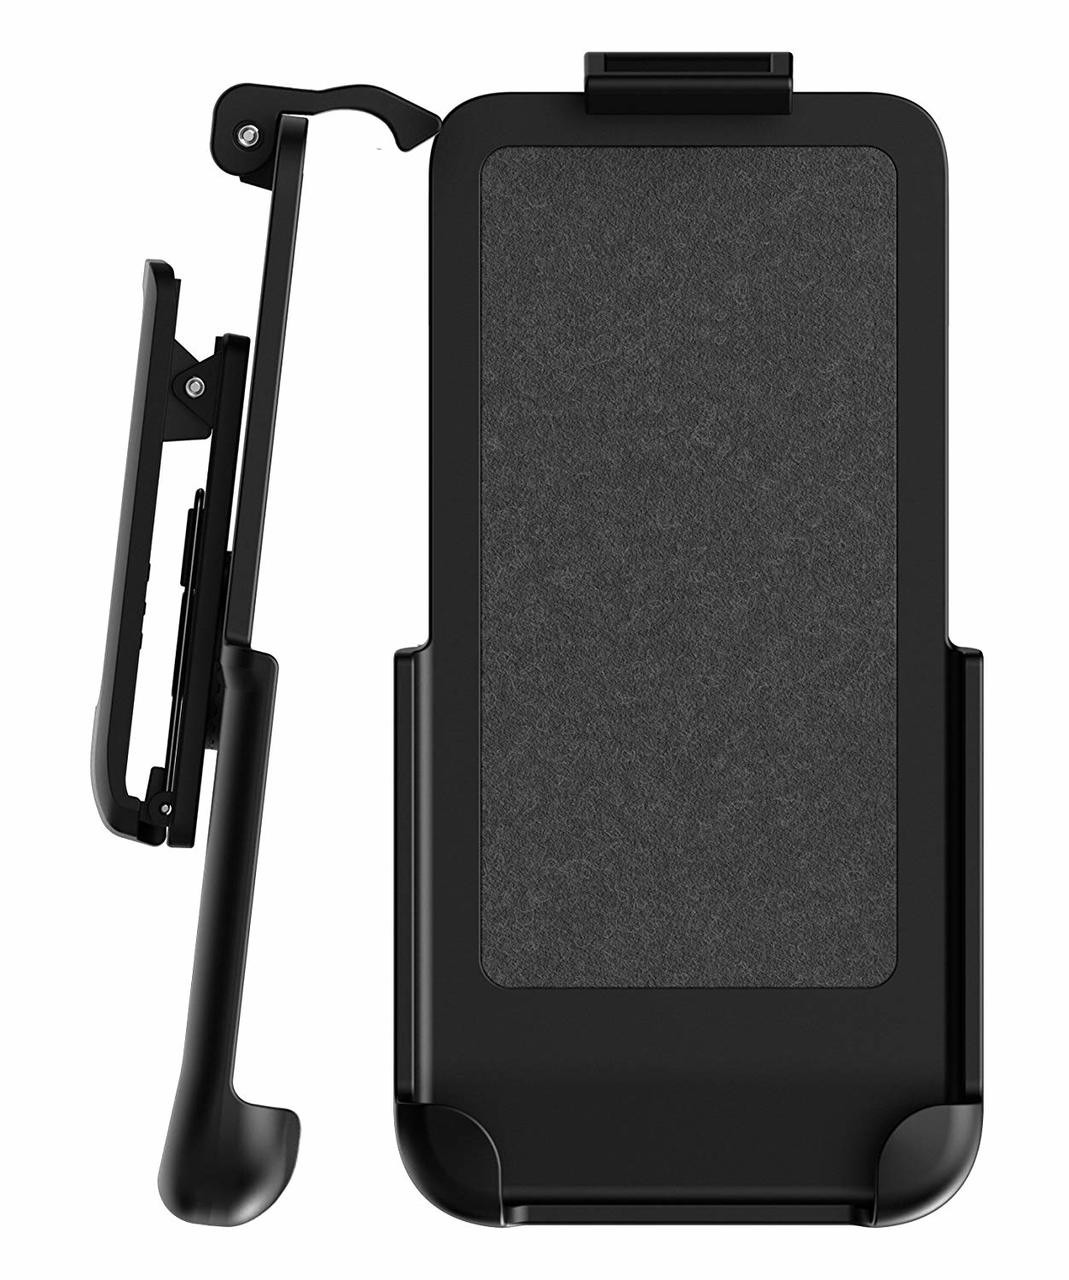 finest selection 48cde 8ff57 Encased OtterBox Belt Clip Holster for OtterBox Defender Samsung Galaxy S9+  Plus (case not included)